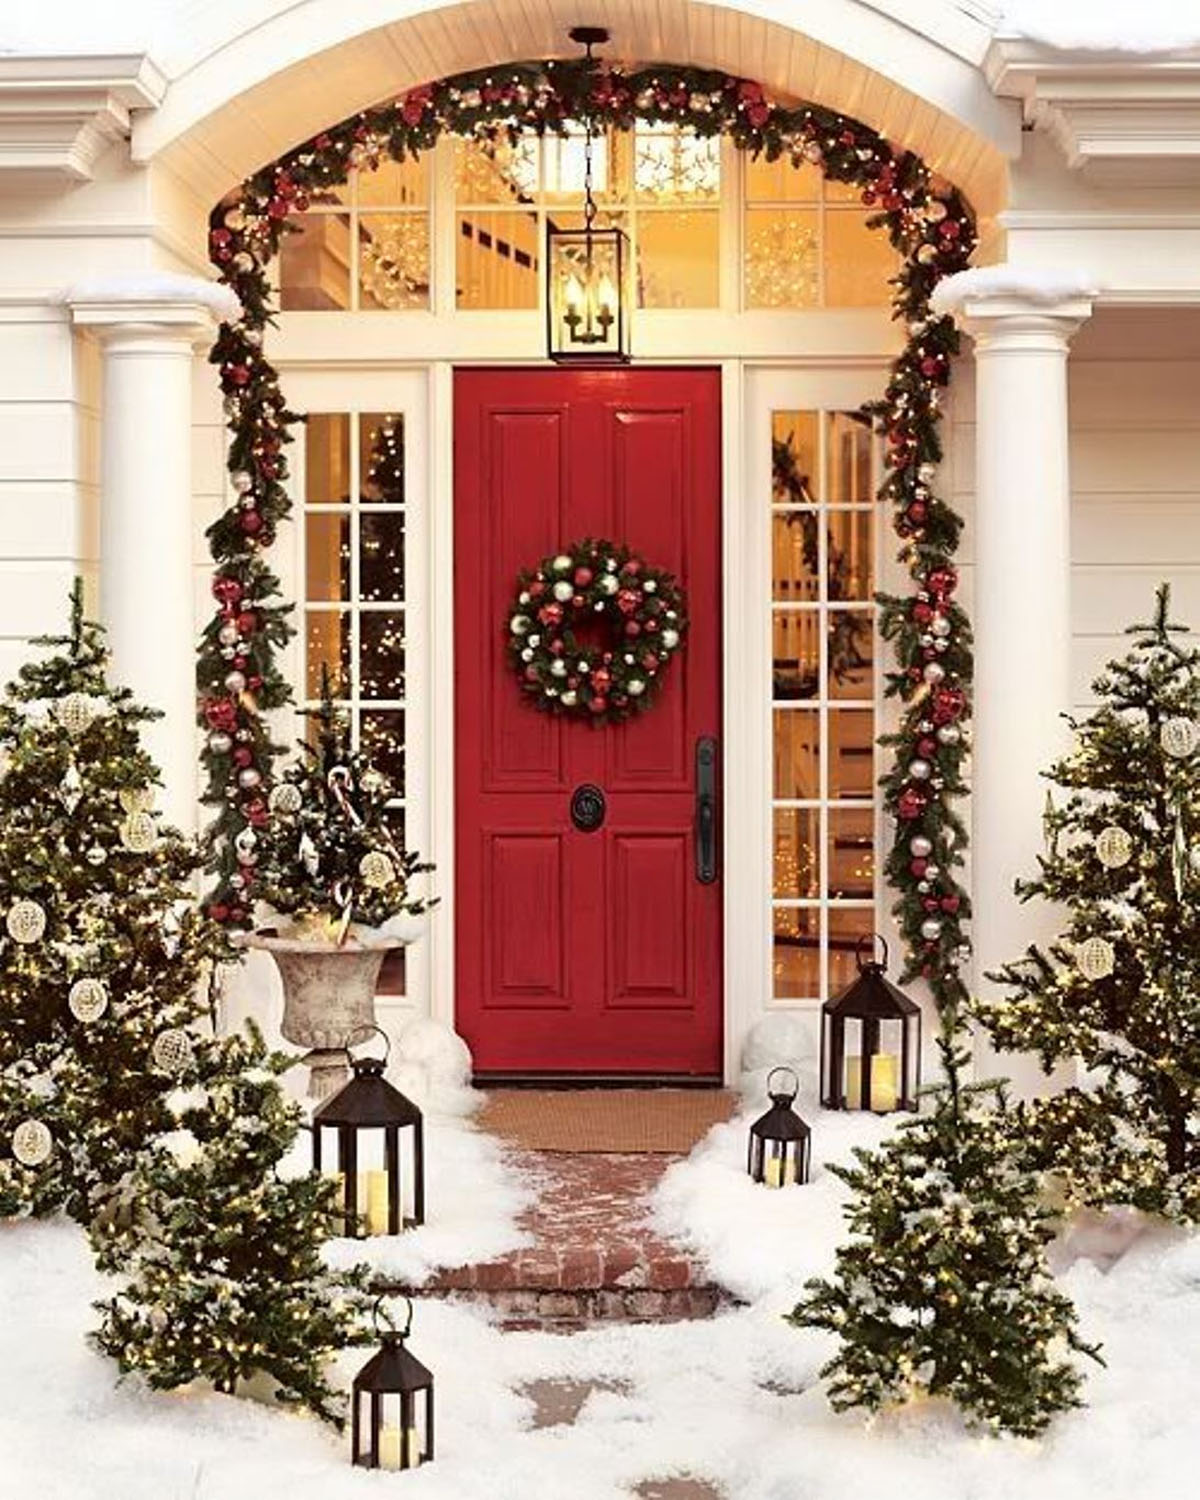 outdoor christmas decoration ideas 48668 - Outdoor Christmas Decoration Ideas